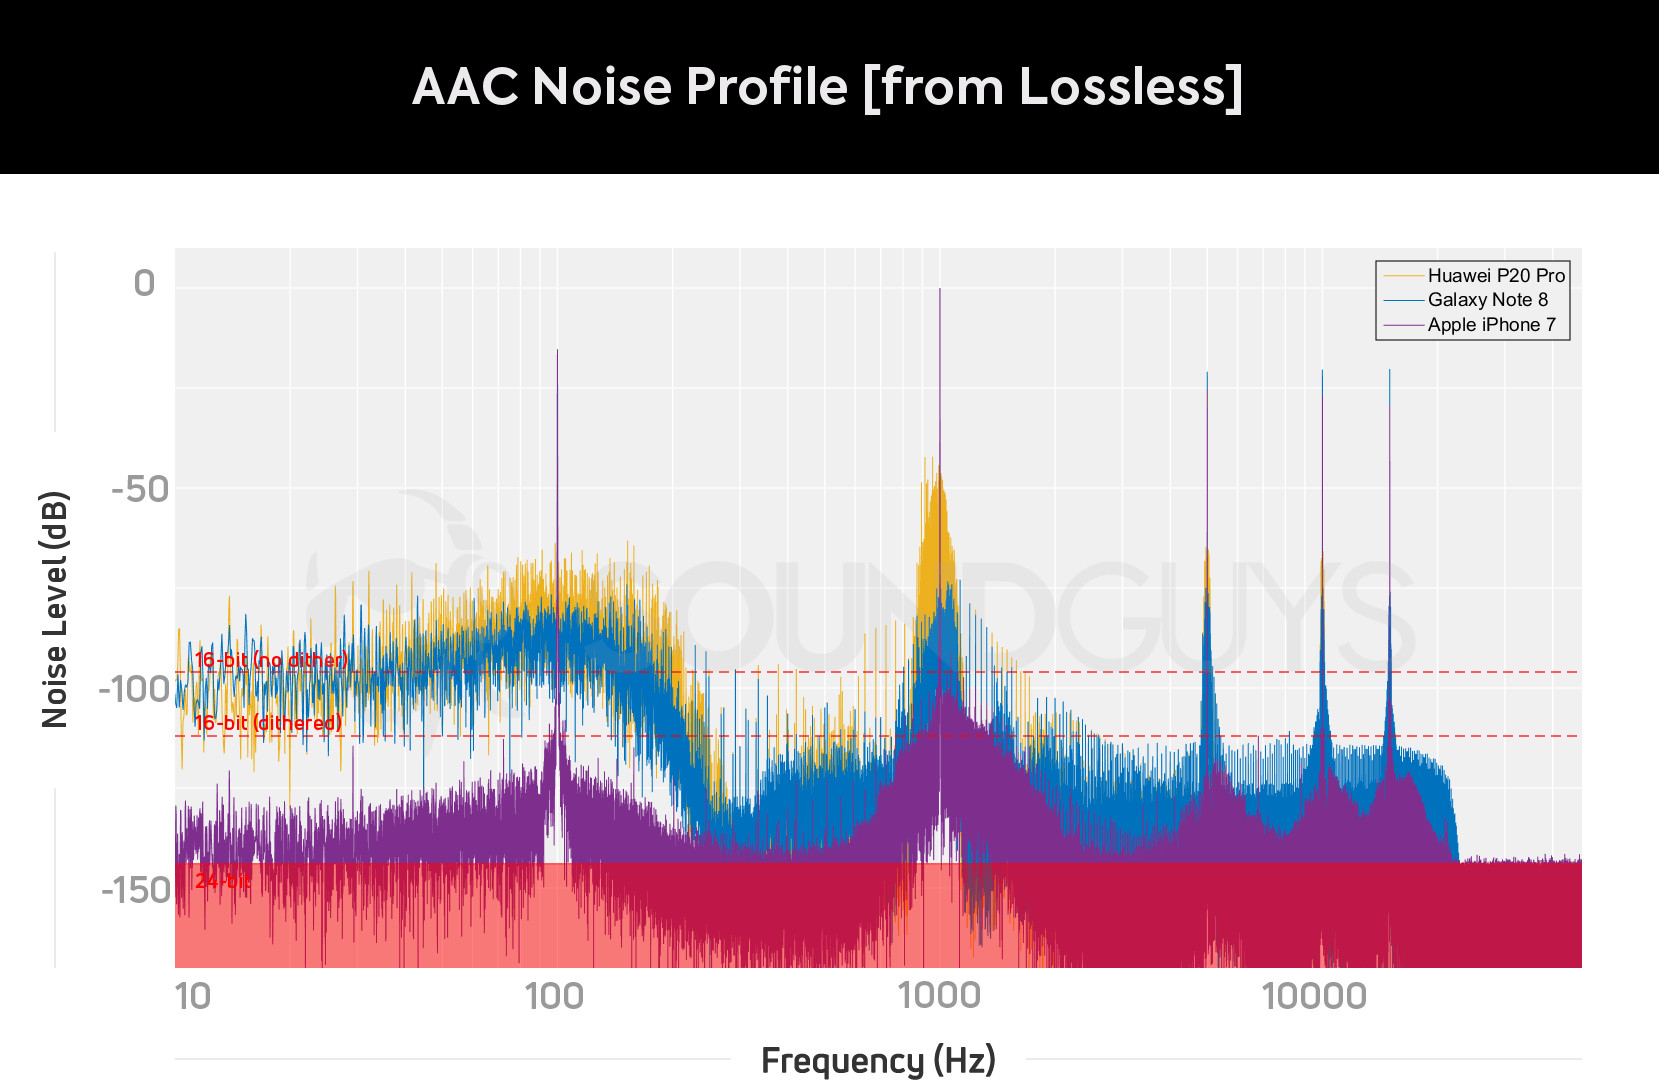 Graph plotting the AAC Bluetooth noise profile for the Huawei P20 Pro, Galaxy Note 8, and Apple iPhone 7